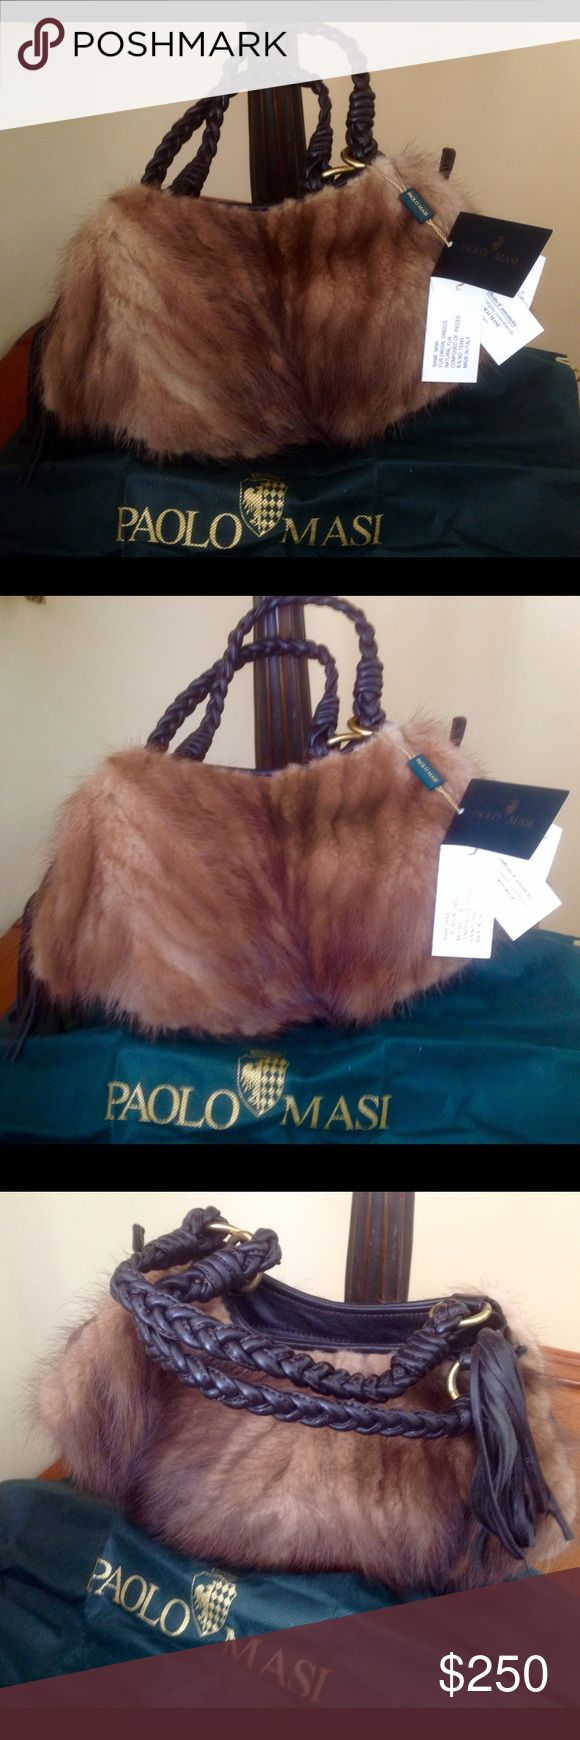 Paolo Masi mink fur handbag made in Italy, purse New original Paolo Masi real mink handbag is natural mink color with dark brown breaded handles and nice tussle attached to zipper. Bag has certificate of authenticity. ❤️ Inside has three compartments, one with zipper as well pocket with zipper too. It's made in Italy!             Since leather and fur are the most popular this season this handbag will be great addition to your outfits! You can use it with everything, from jeans to camel coat…